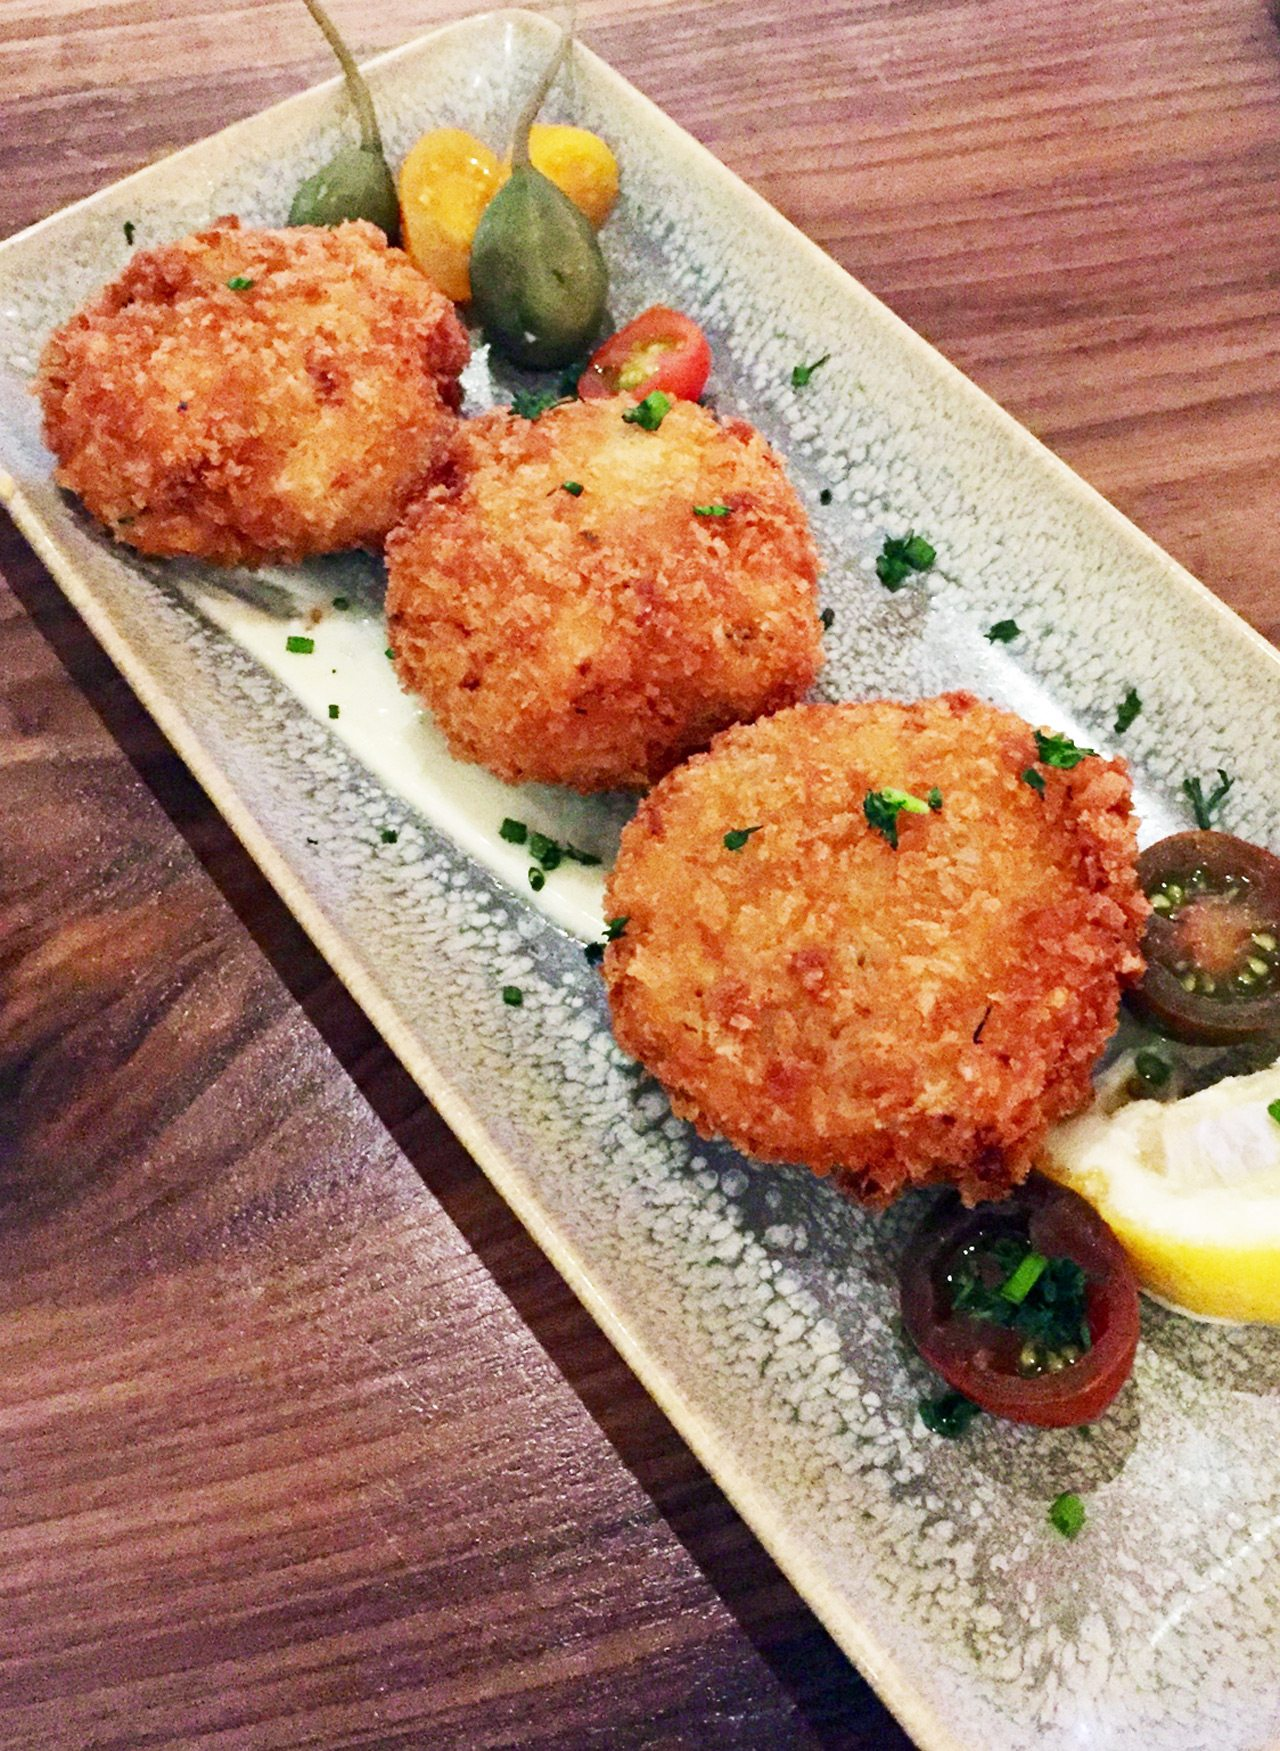 OCCO's panko-crusted salt cod cakes